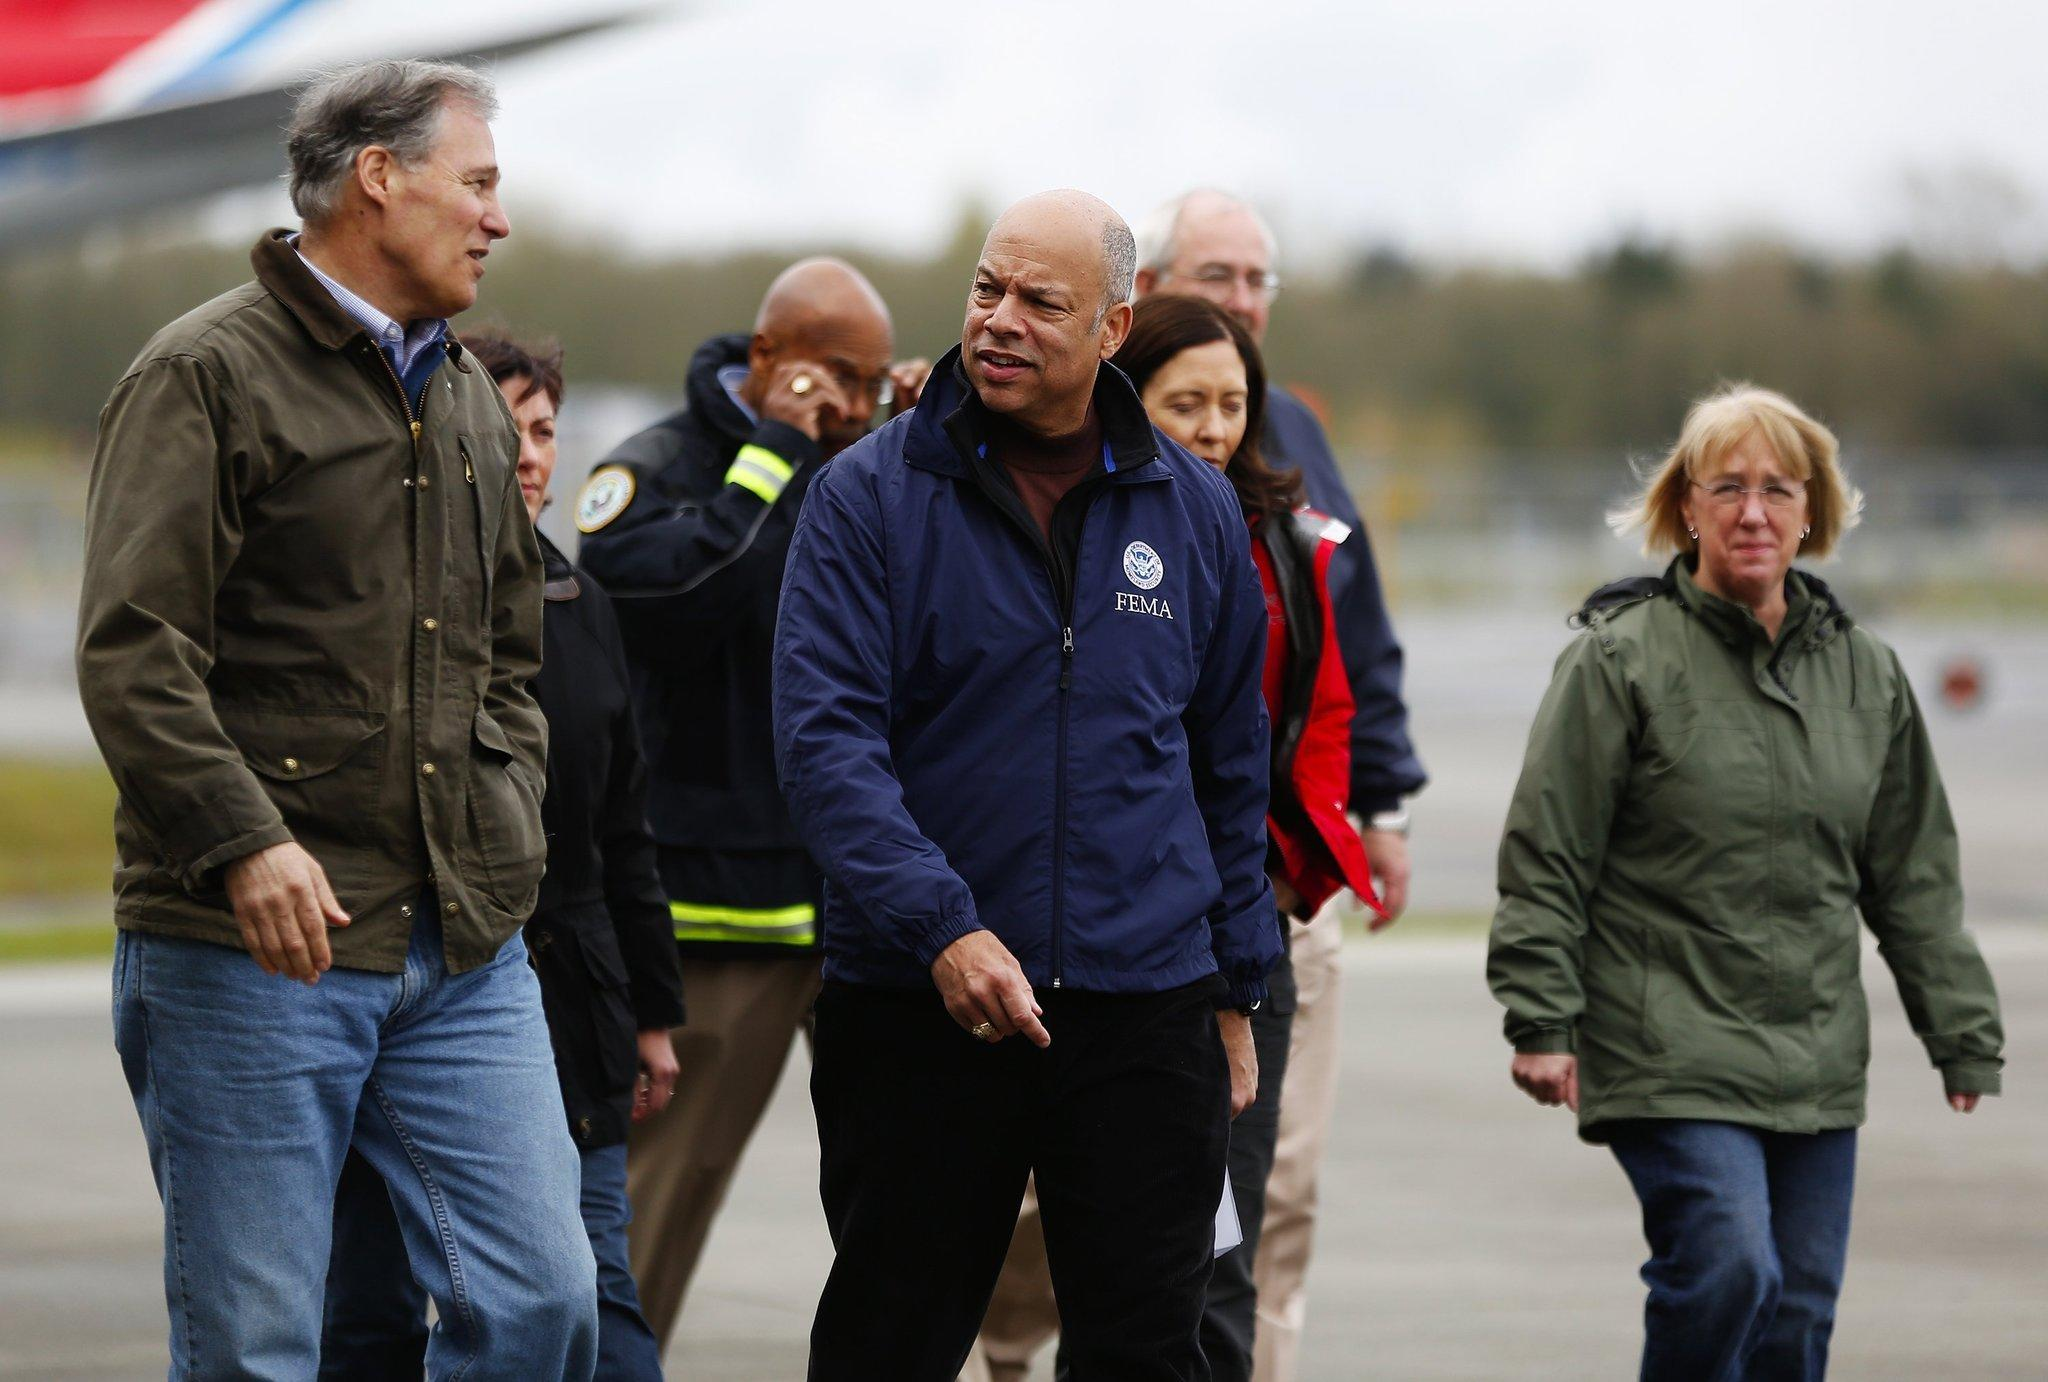 Washington Gov. Jay Inslee, left, joined by Homeland Security Secretary Jeh Johnson, center, and Sen. Patty Murray (D-Wash.), right.